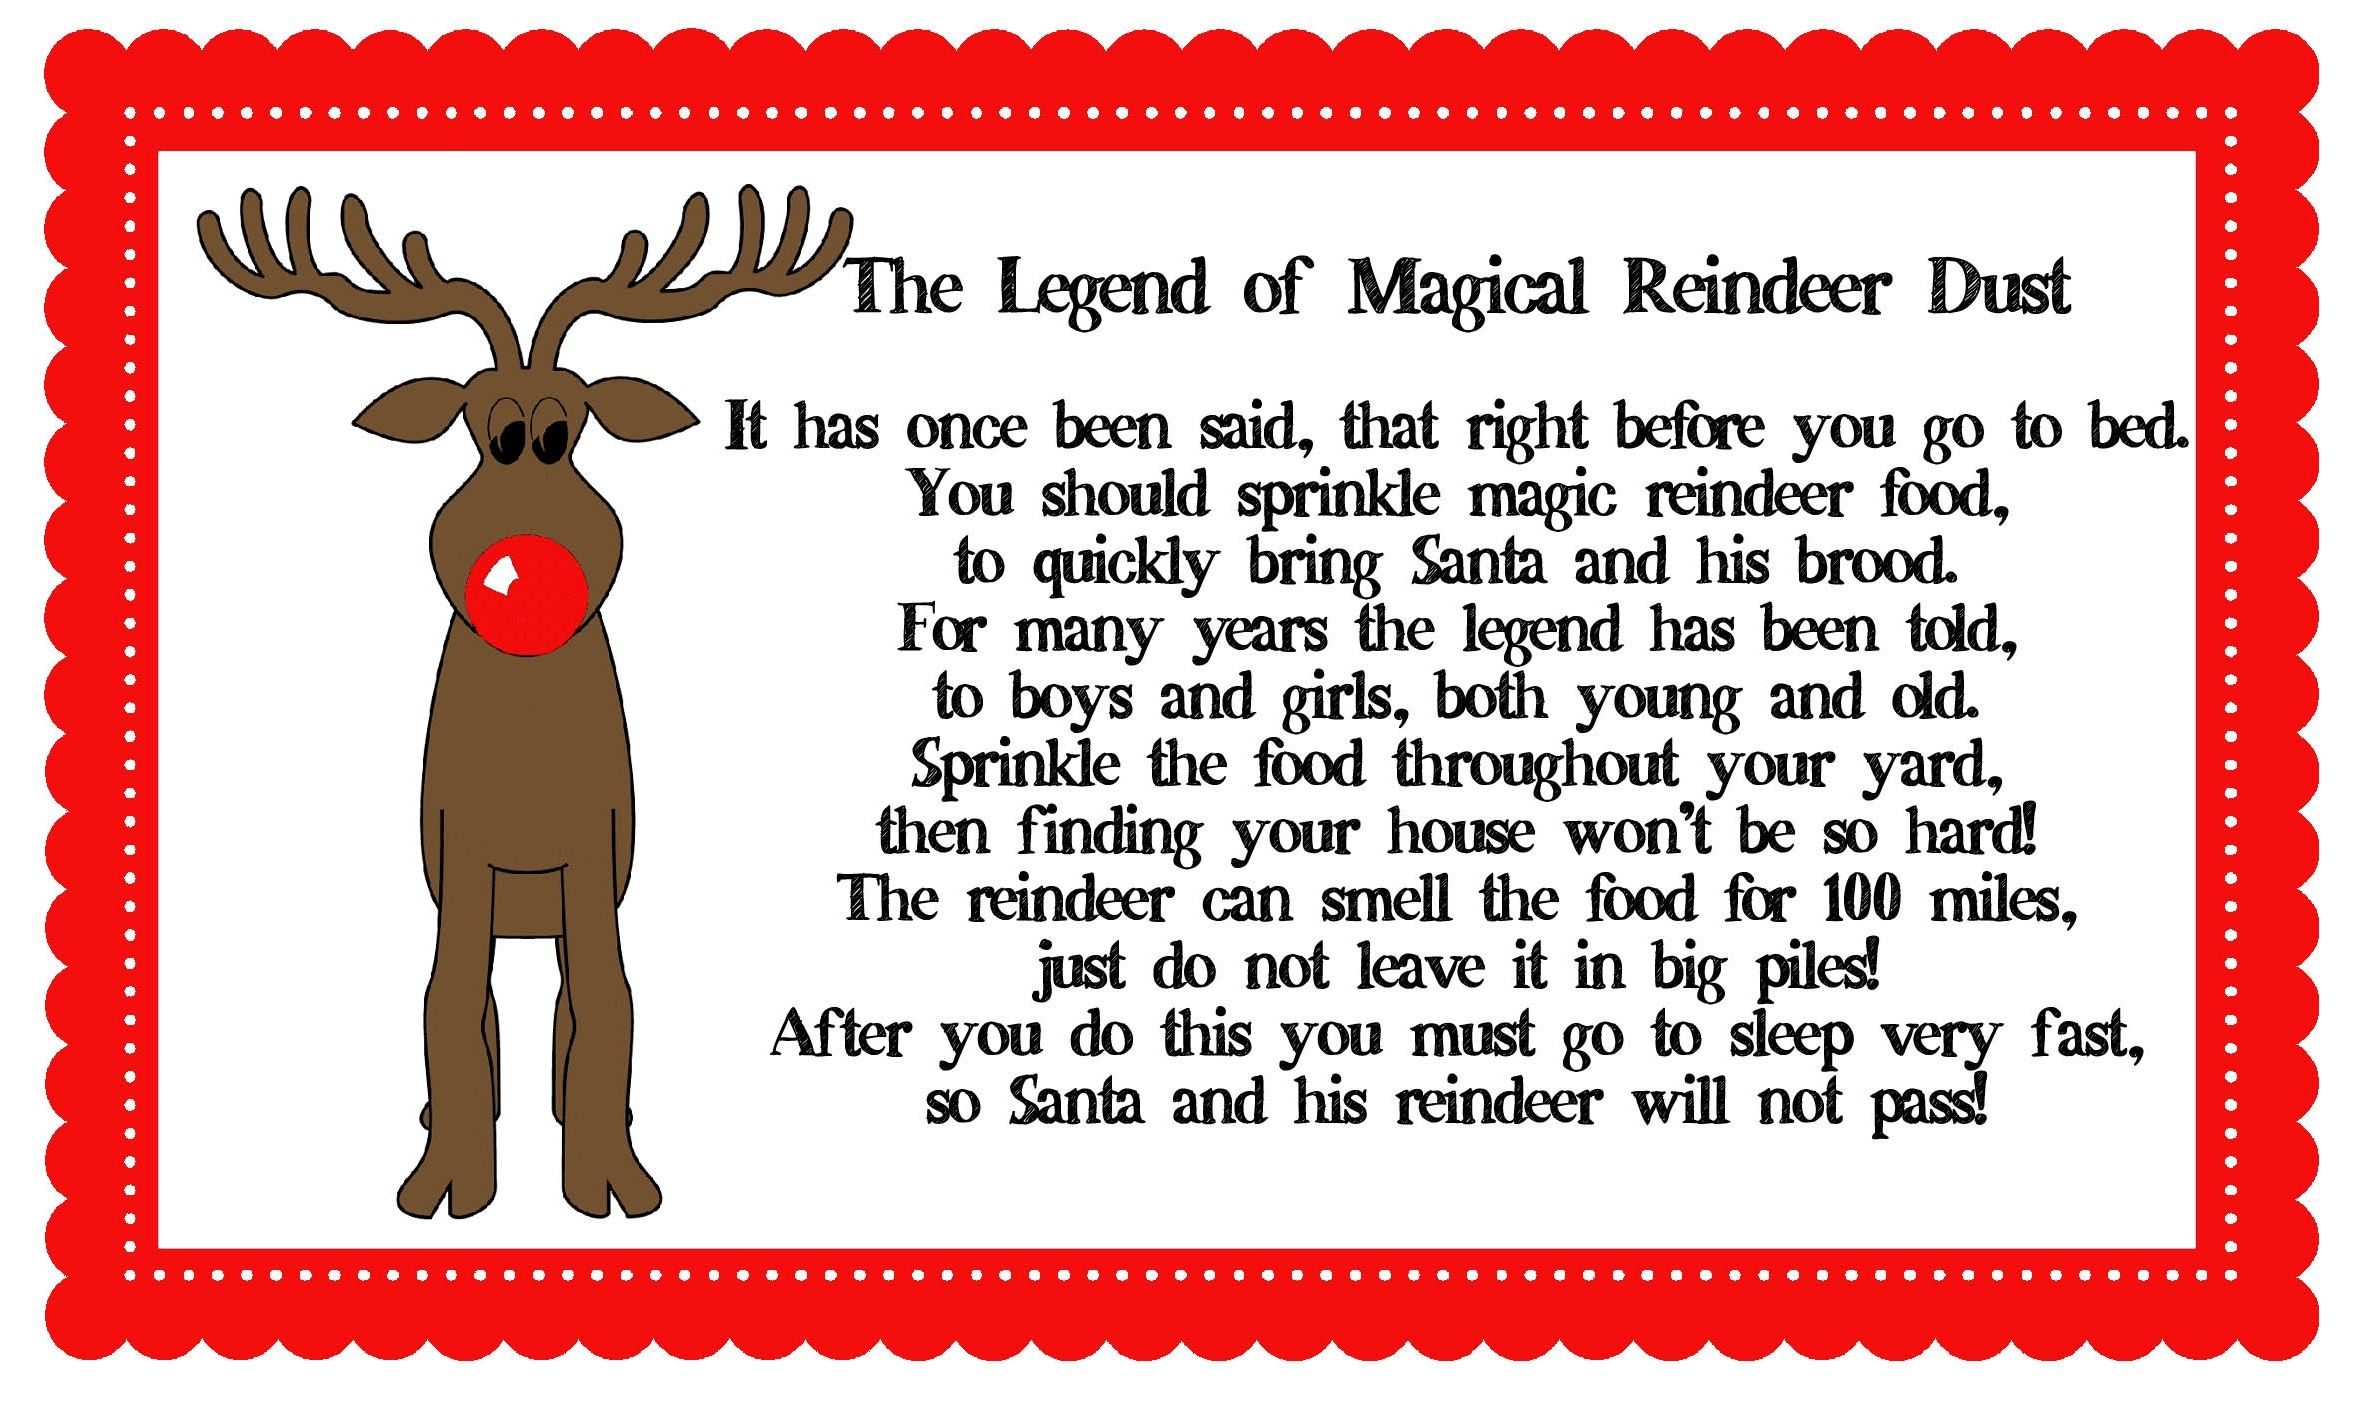 Magical Reindeer Dust Maybe The Elf Could Bring This On Christmas Eve As A Goodbye T To The